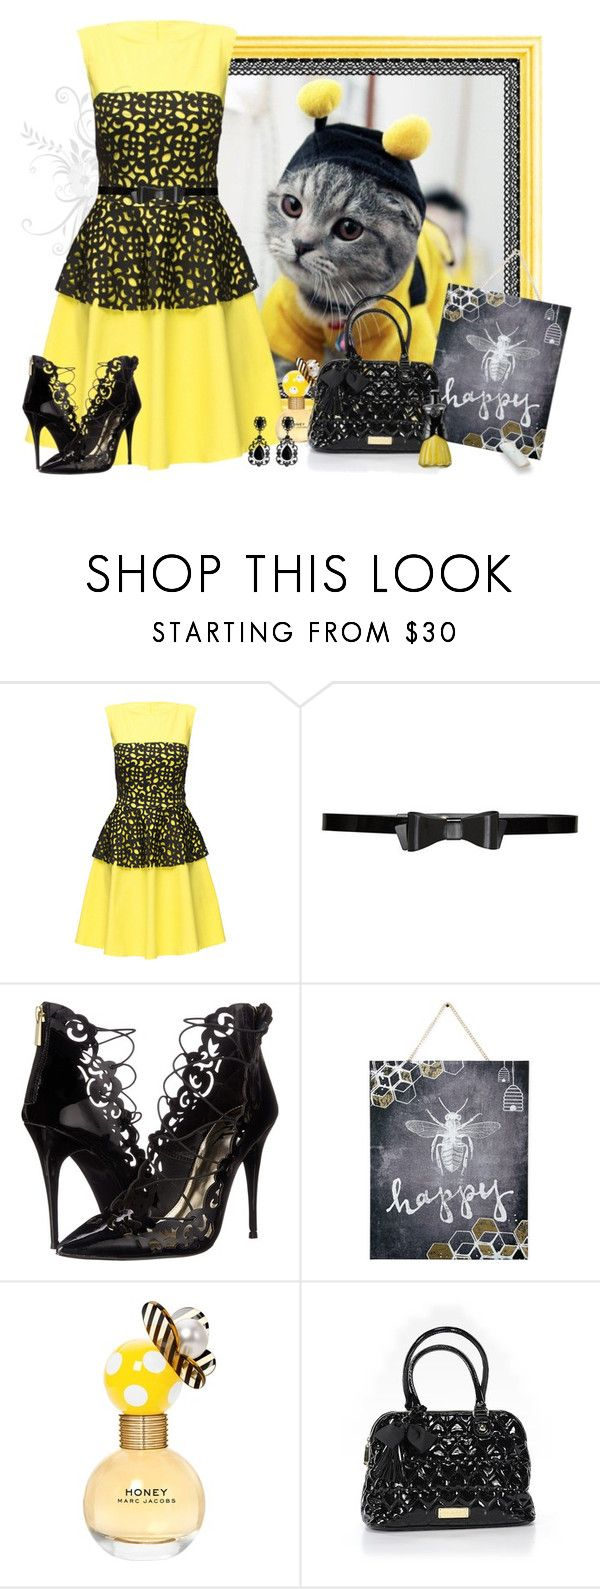 """Beauty Buzz"" by love-n-laughter ❤ liked on Polyvore featuring Lattori, Alice + Olivia, Lust For Life, Graham & Brown, Marc Jacobs, Betsey Johnson and Anna Sui"